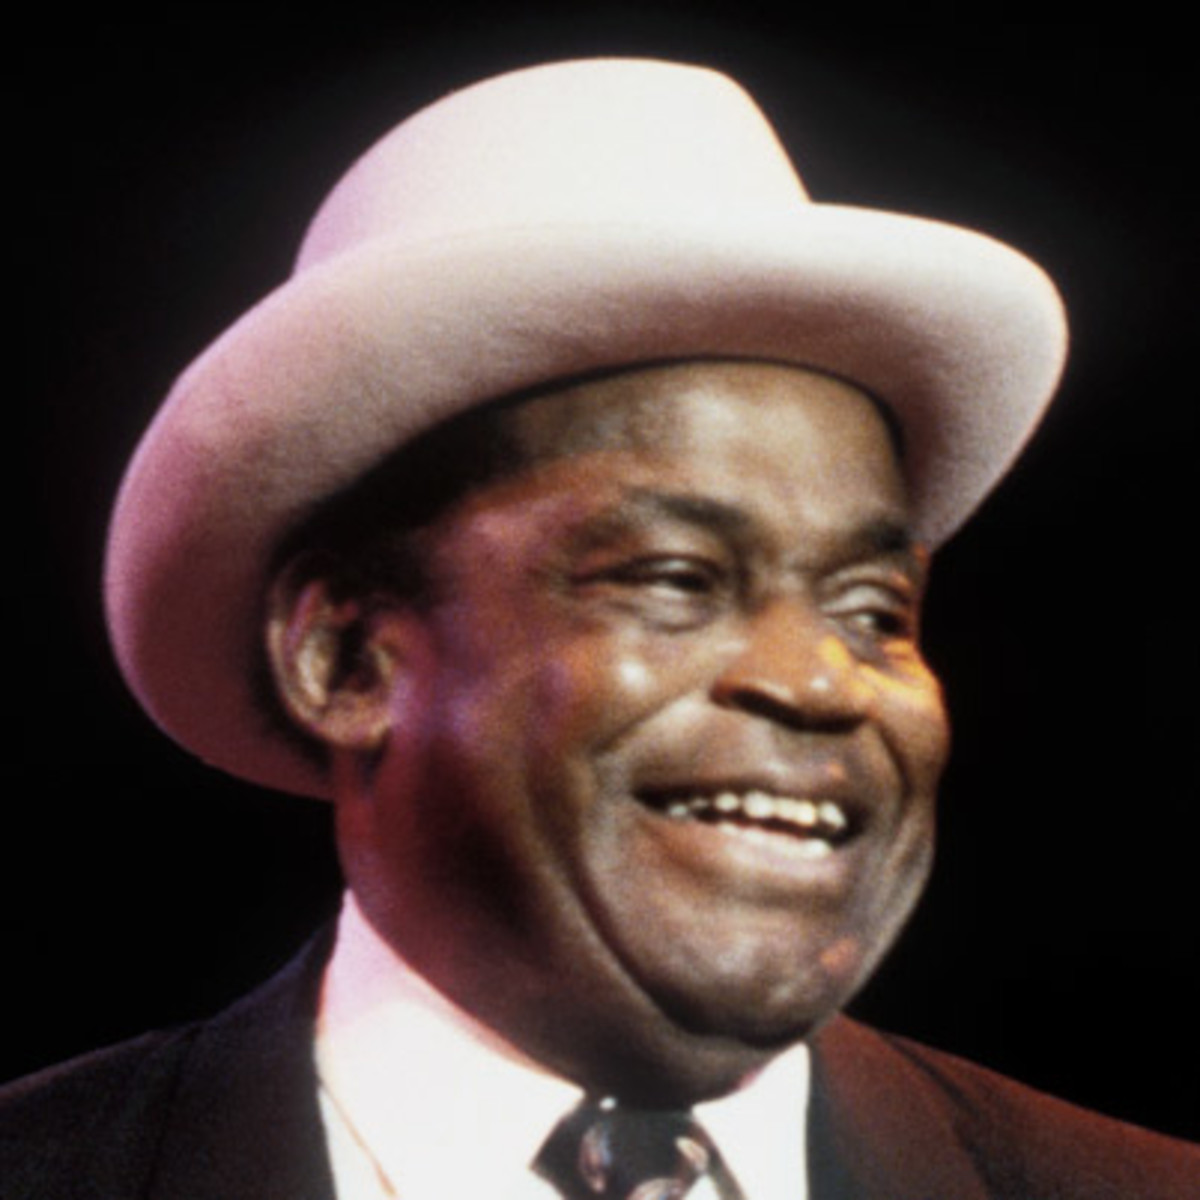 willie dixon   music producer songwriter bassist